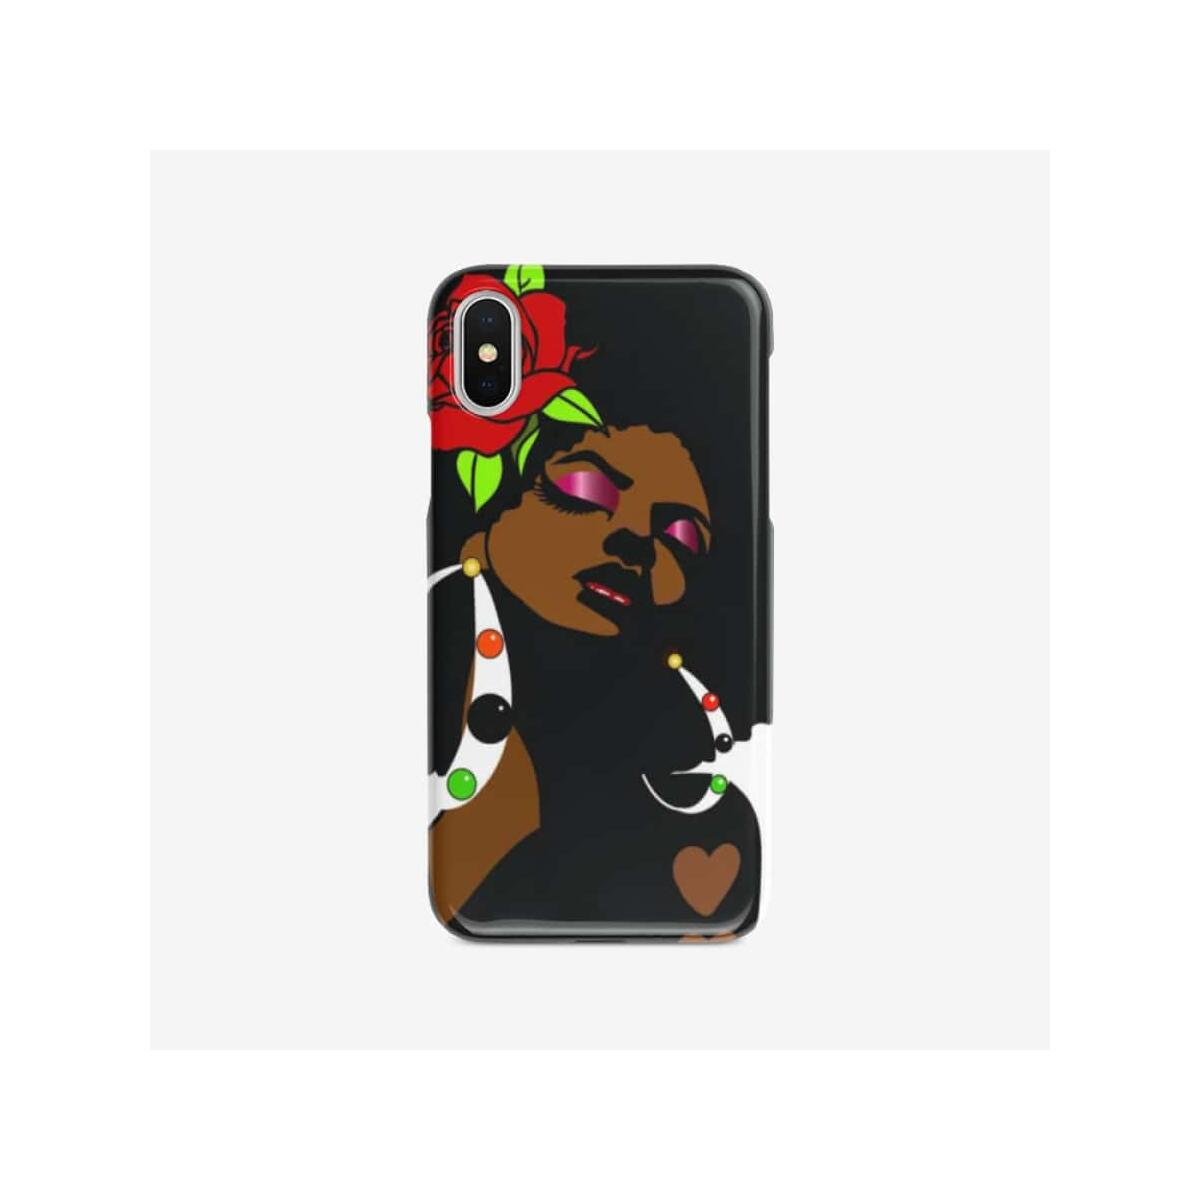 Black Afro Girl With a Red Rose Iphone case, iPhone 5/5s